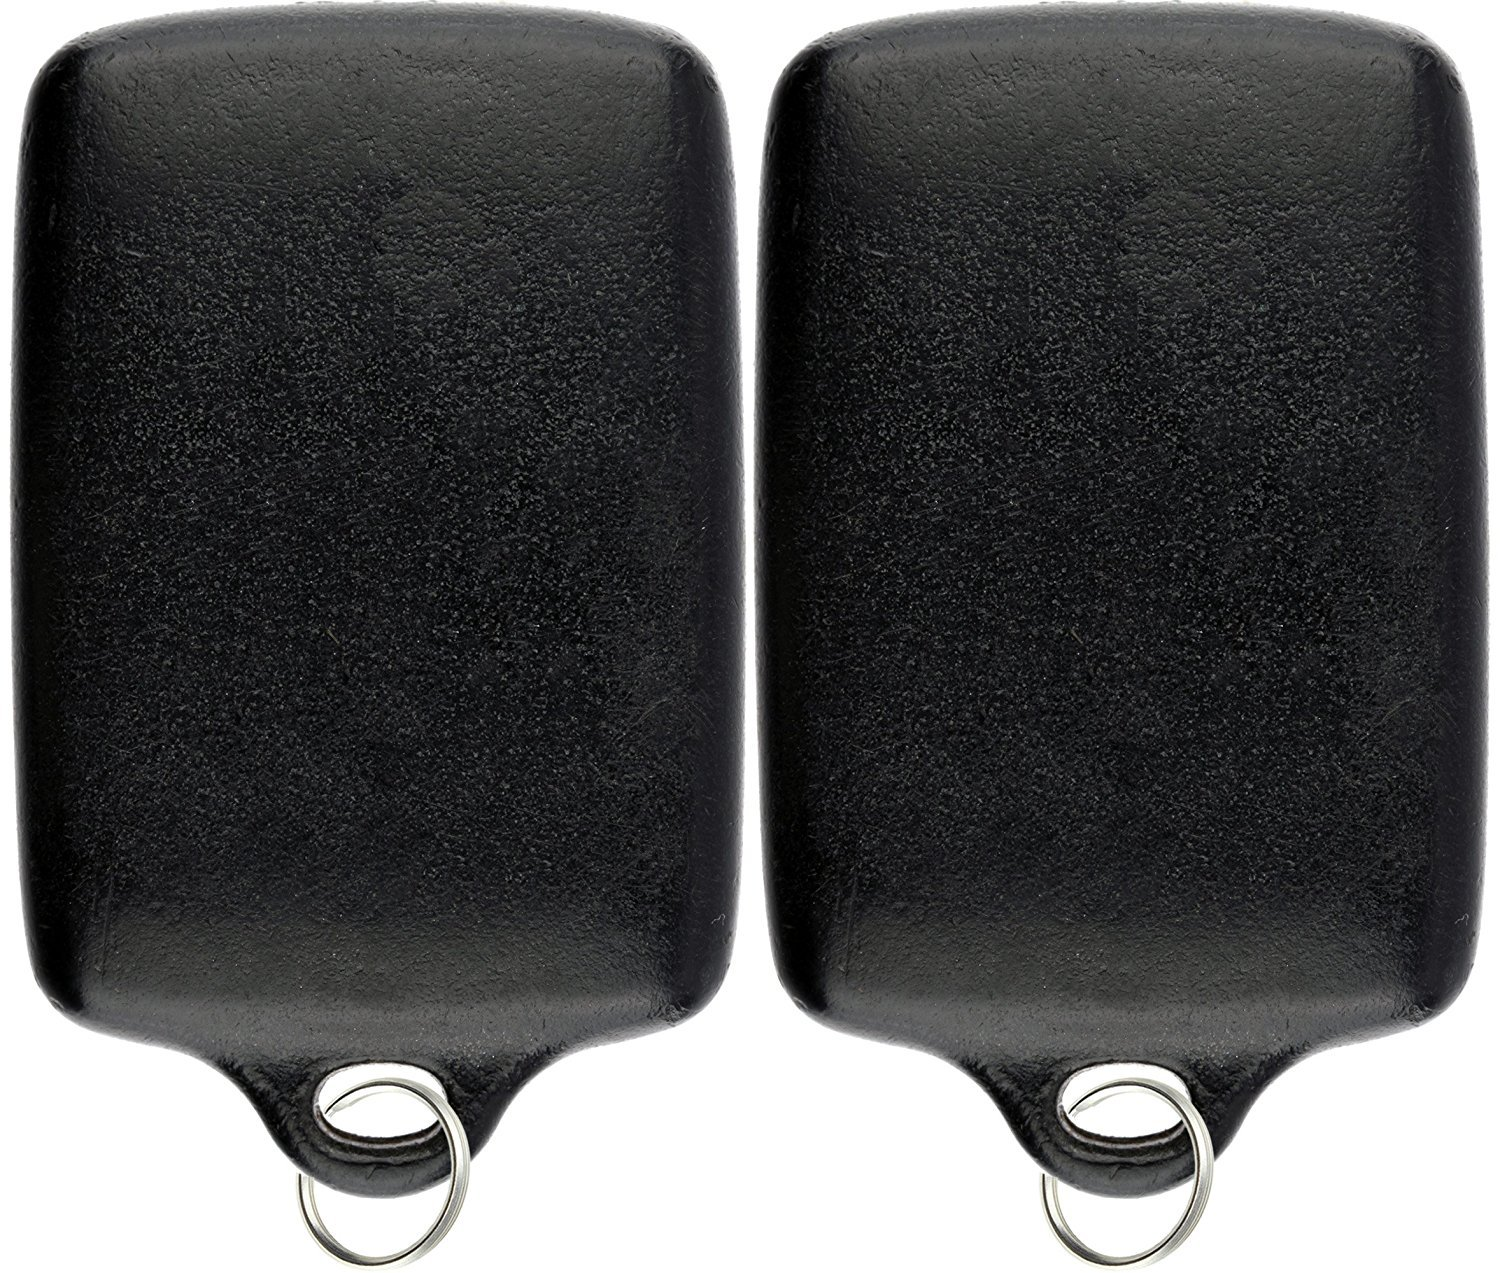 KeylessOption Keyless Entry Remote Control Car Key Fob Replacement for Camry GQ43VT7T Pack of 2